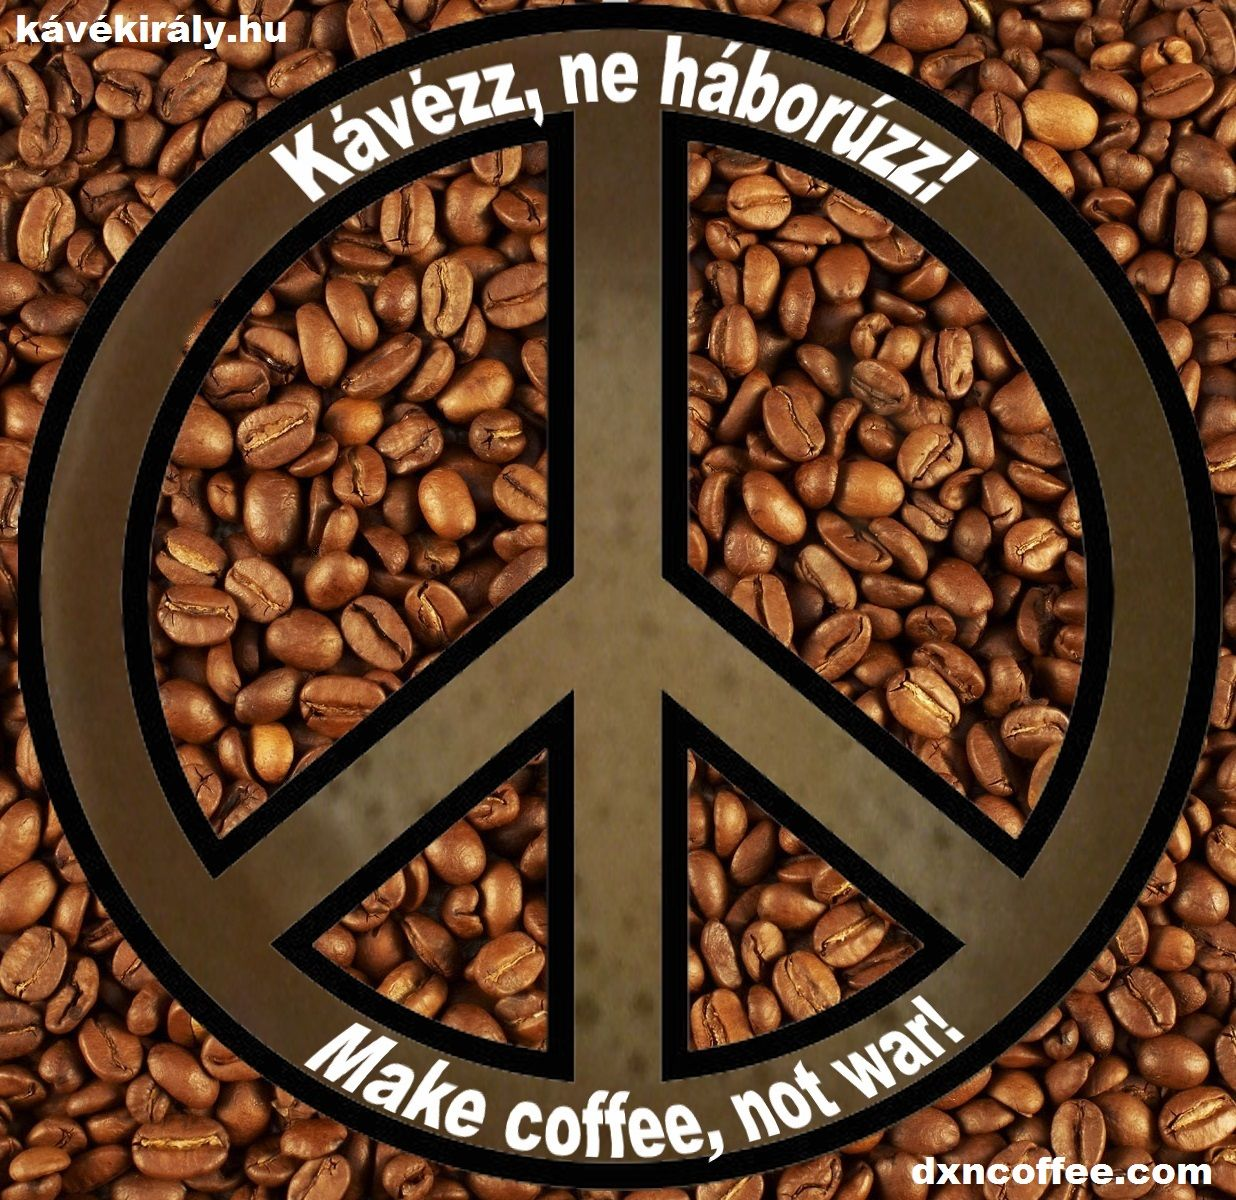 Make coffee, not war! What is the global impact of DXN MLM?